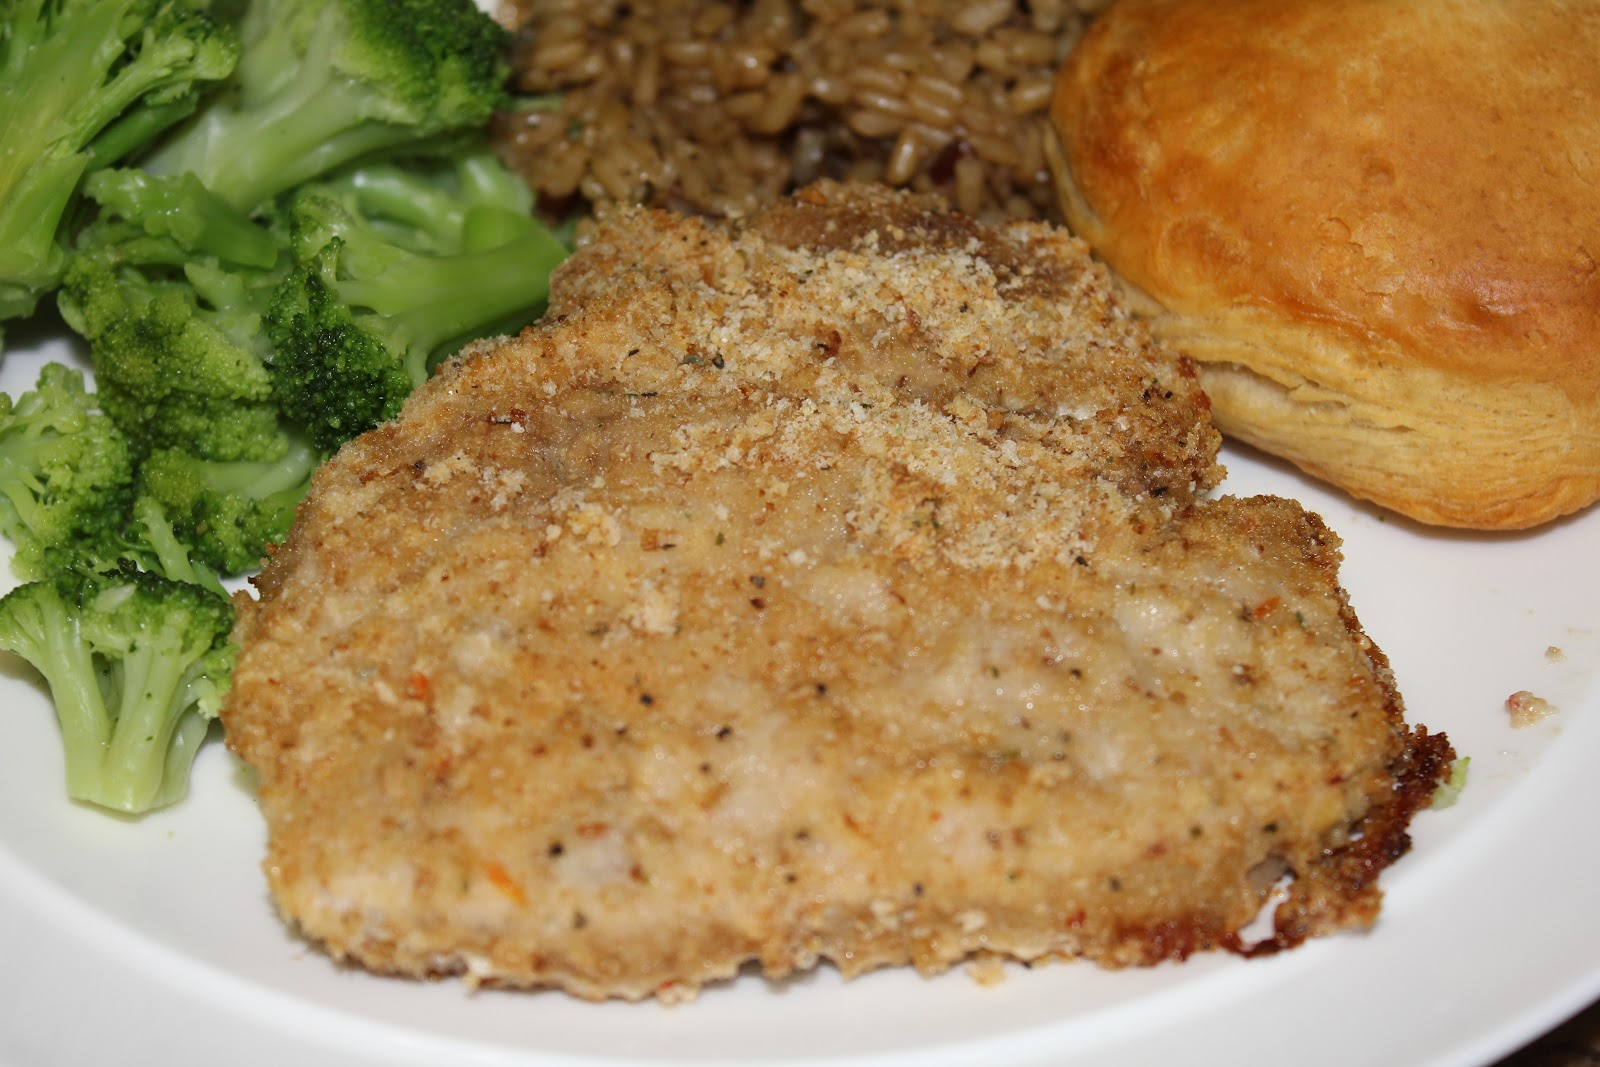 simply made with love: The Best Pork Chops You Will Ever Taste